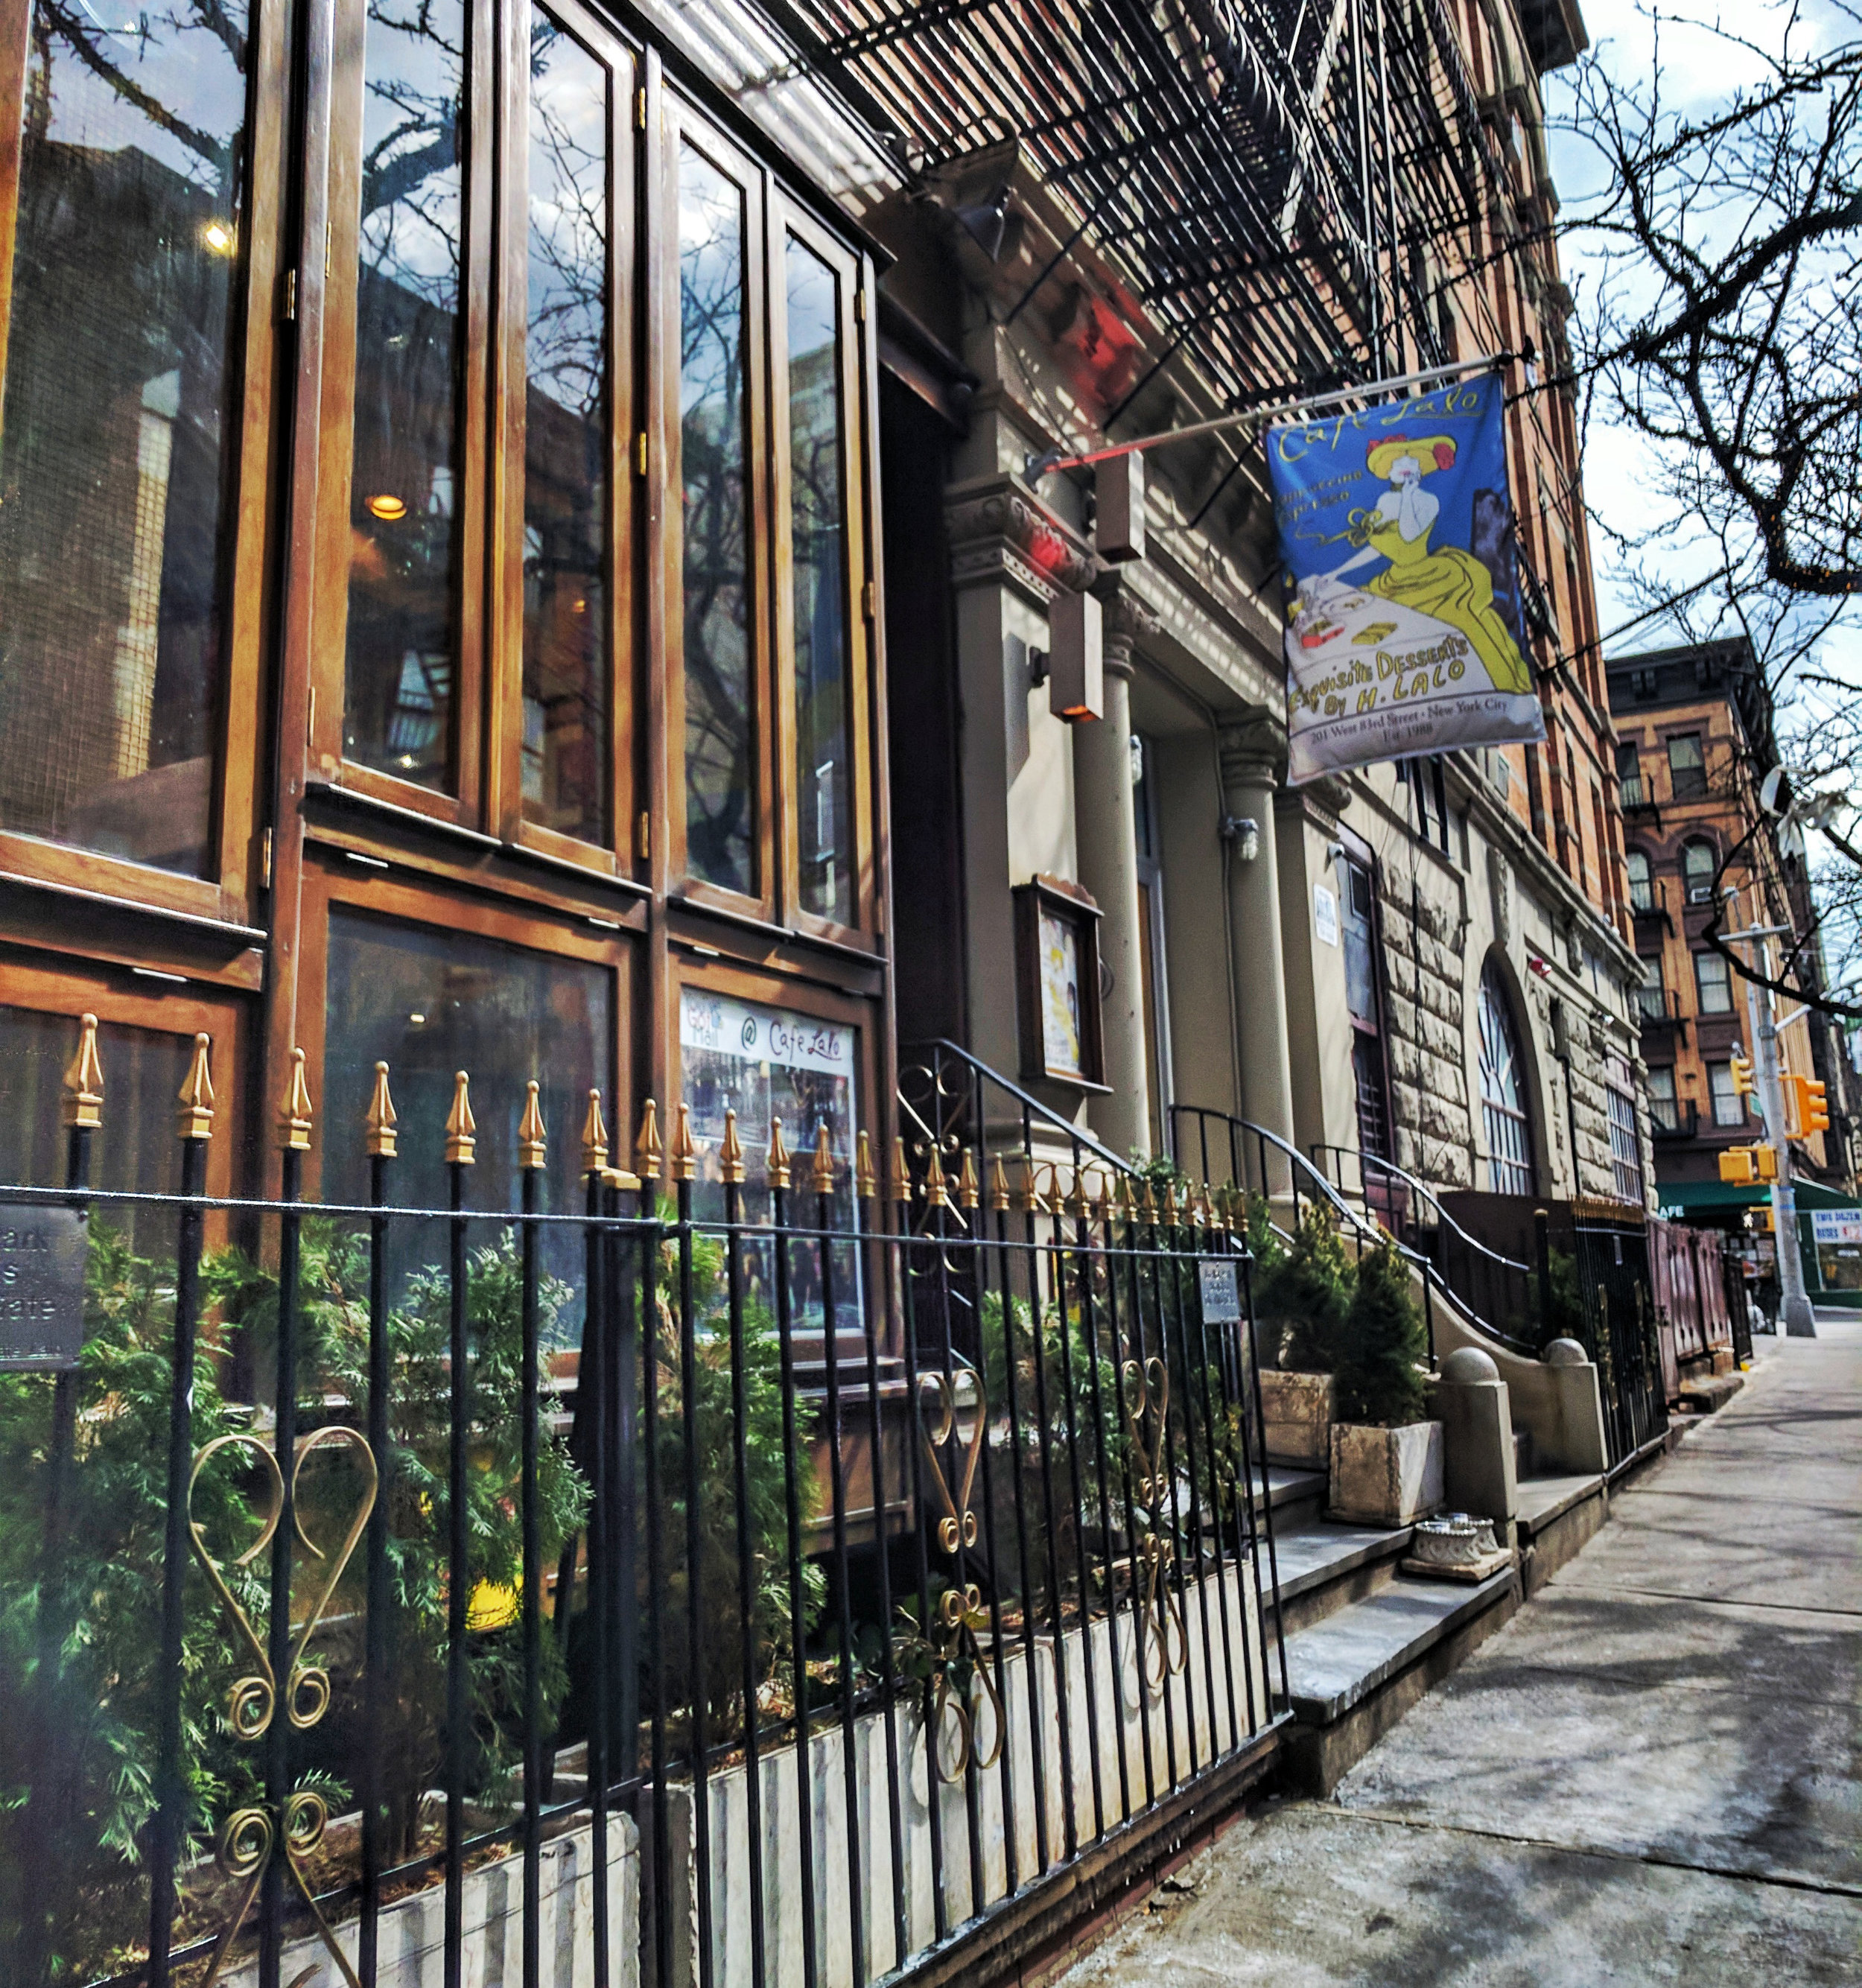 Location: 201 West 83rd Street (between Broadway and Amsterdam)